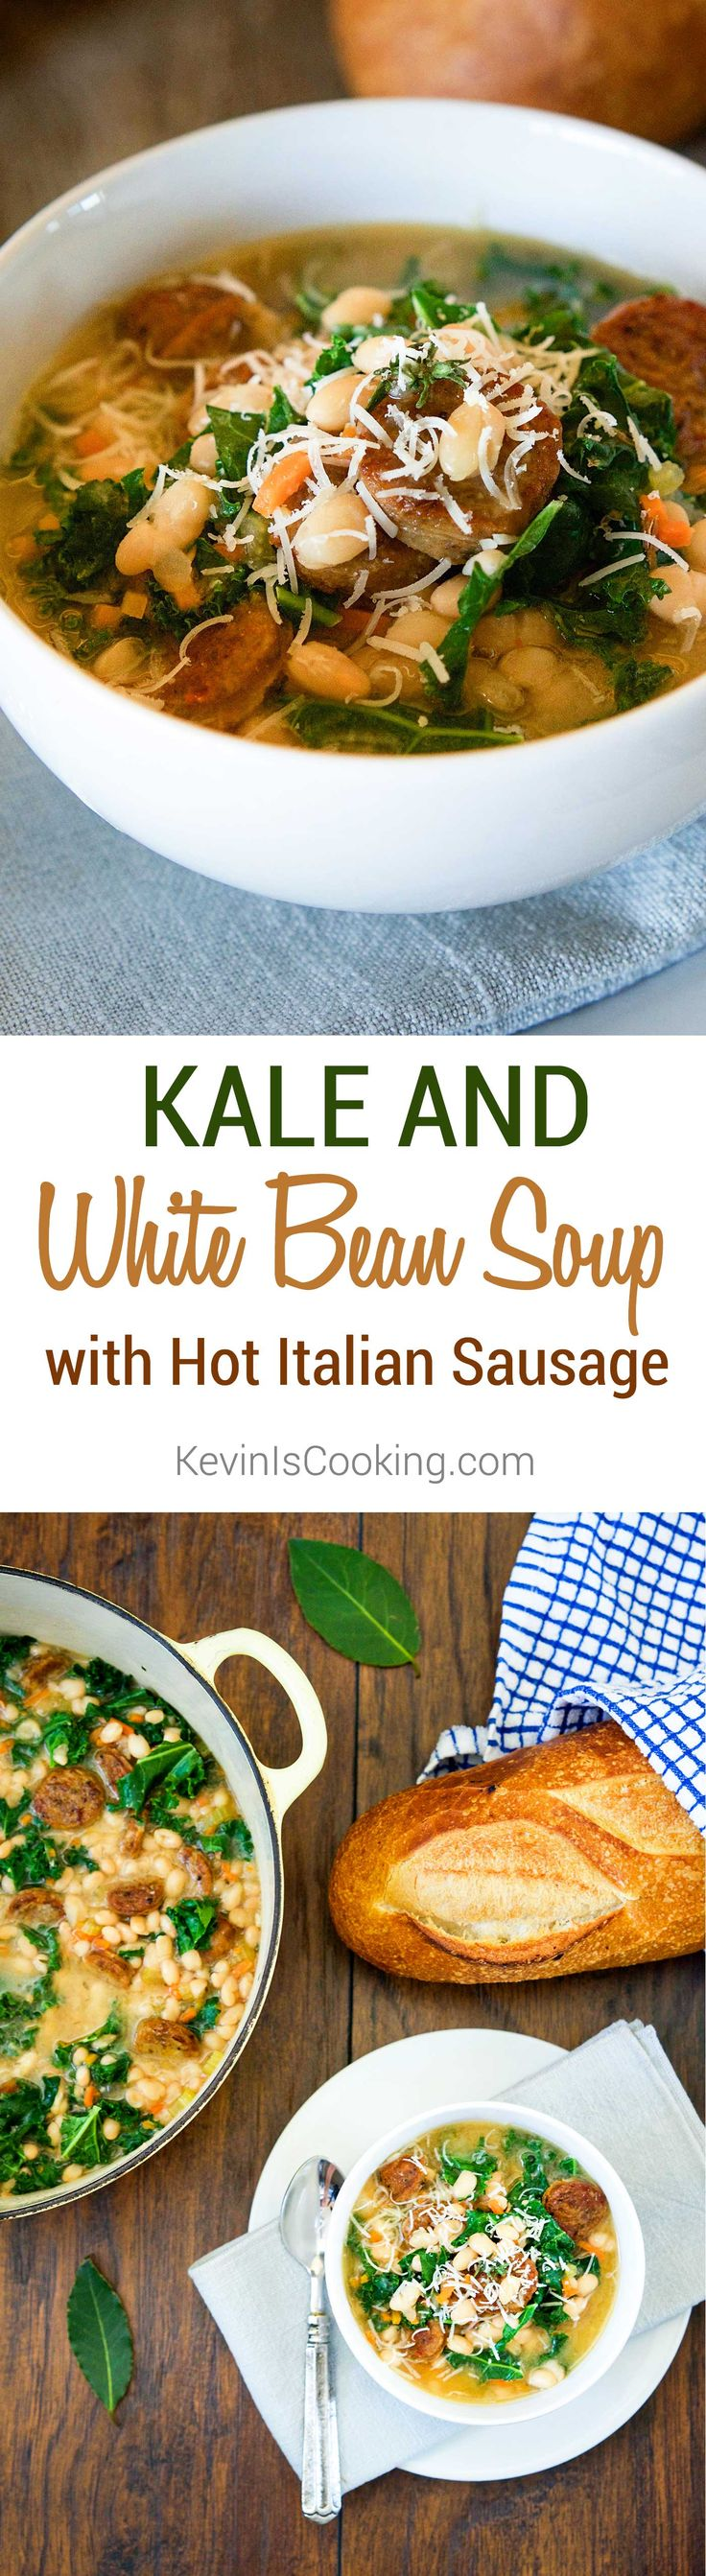 25+ best ideas about Kale and bean soup on Pinterest ...